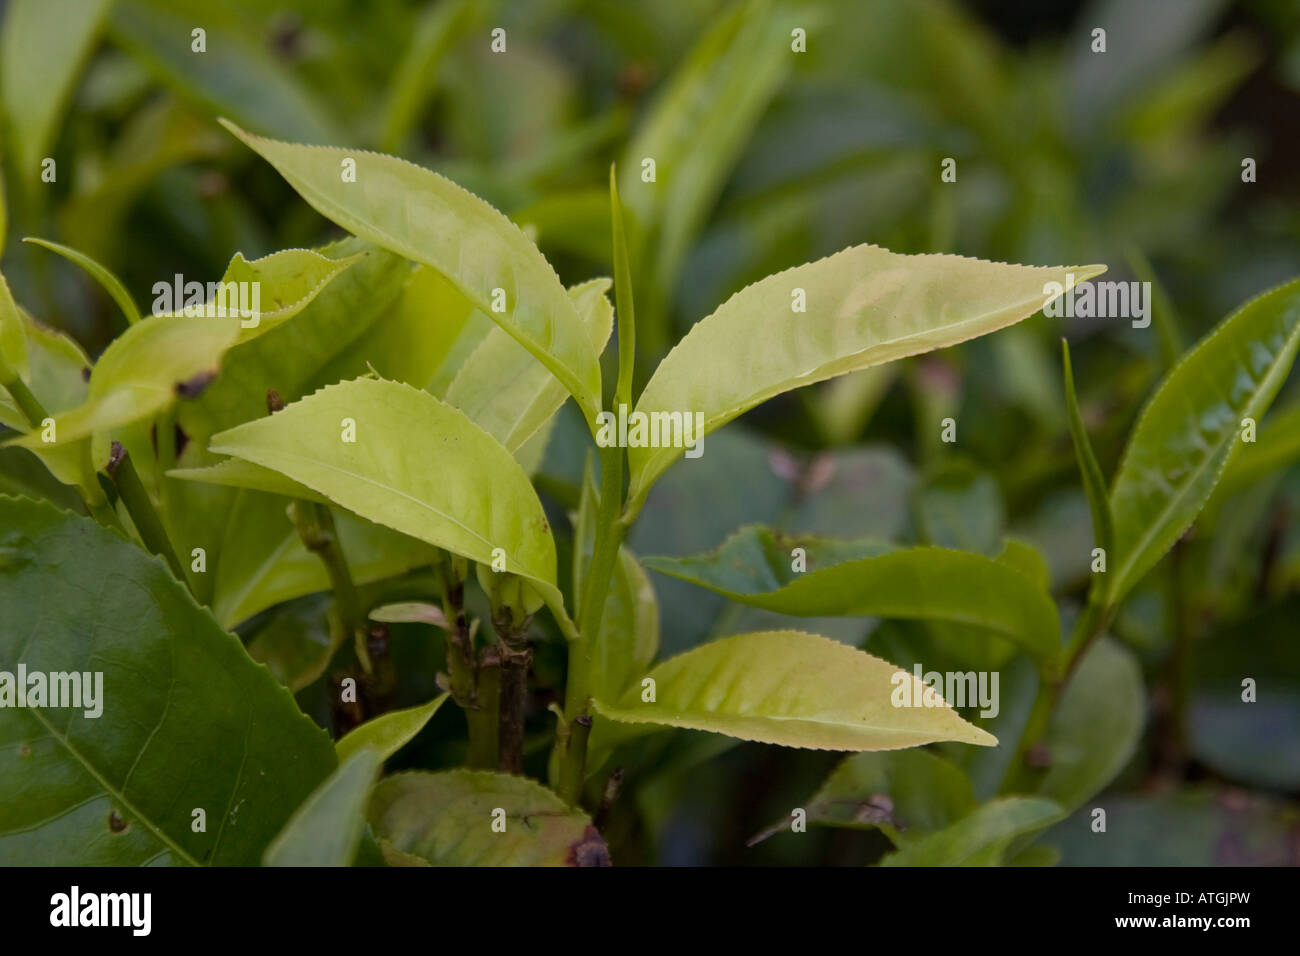 the tip of the tea plant leaf is known as silvertip - Stock Image